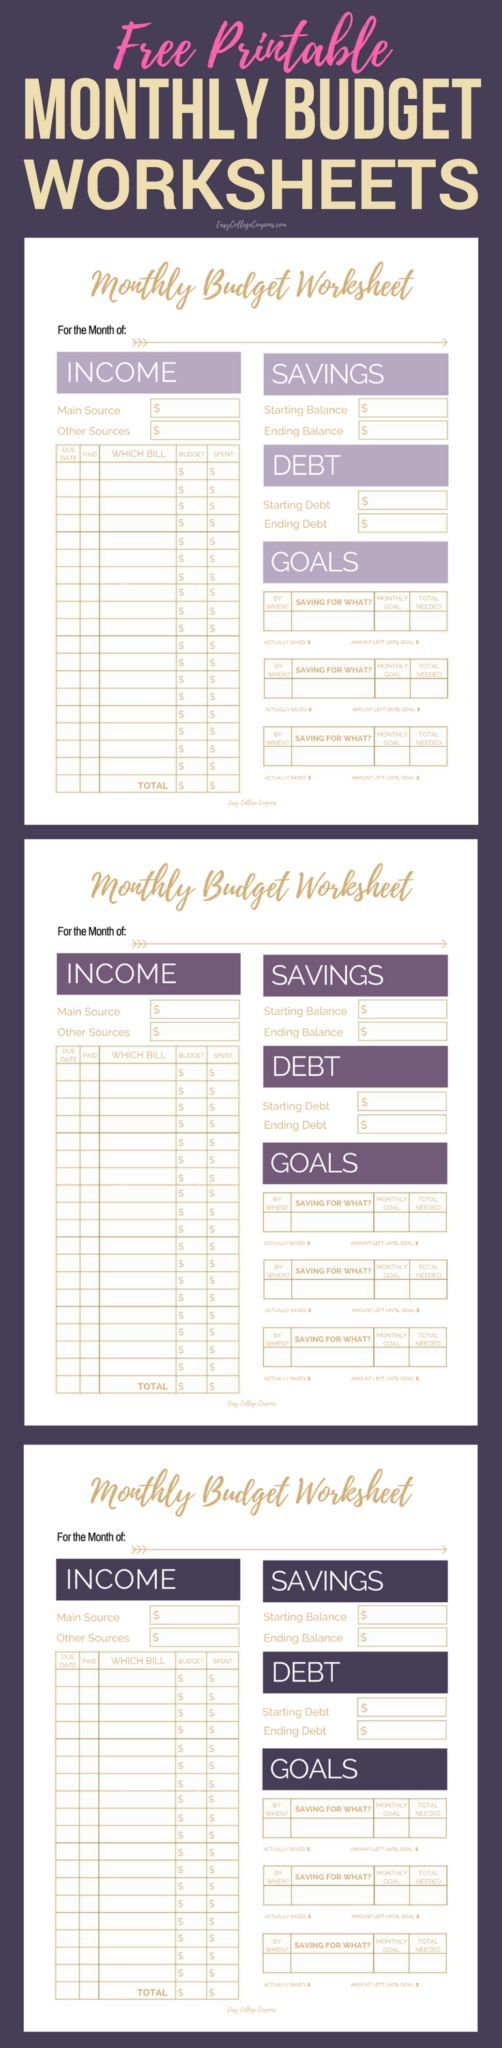 Free Printable Budget Worksheet, Sheets, Planner | Simple College Budgeting | Finance, Saving Money